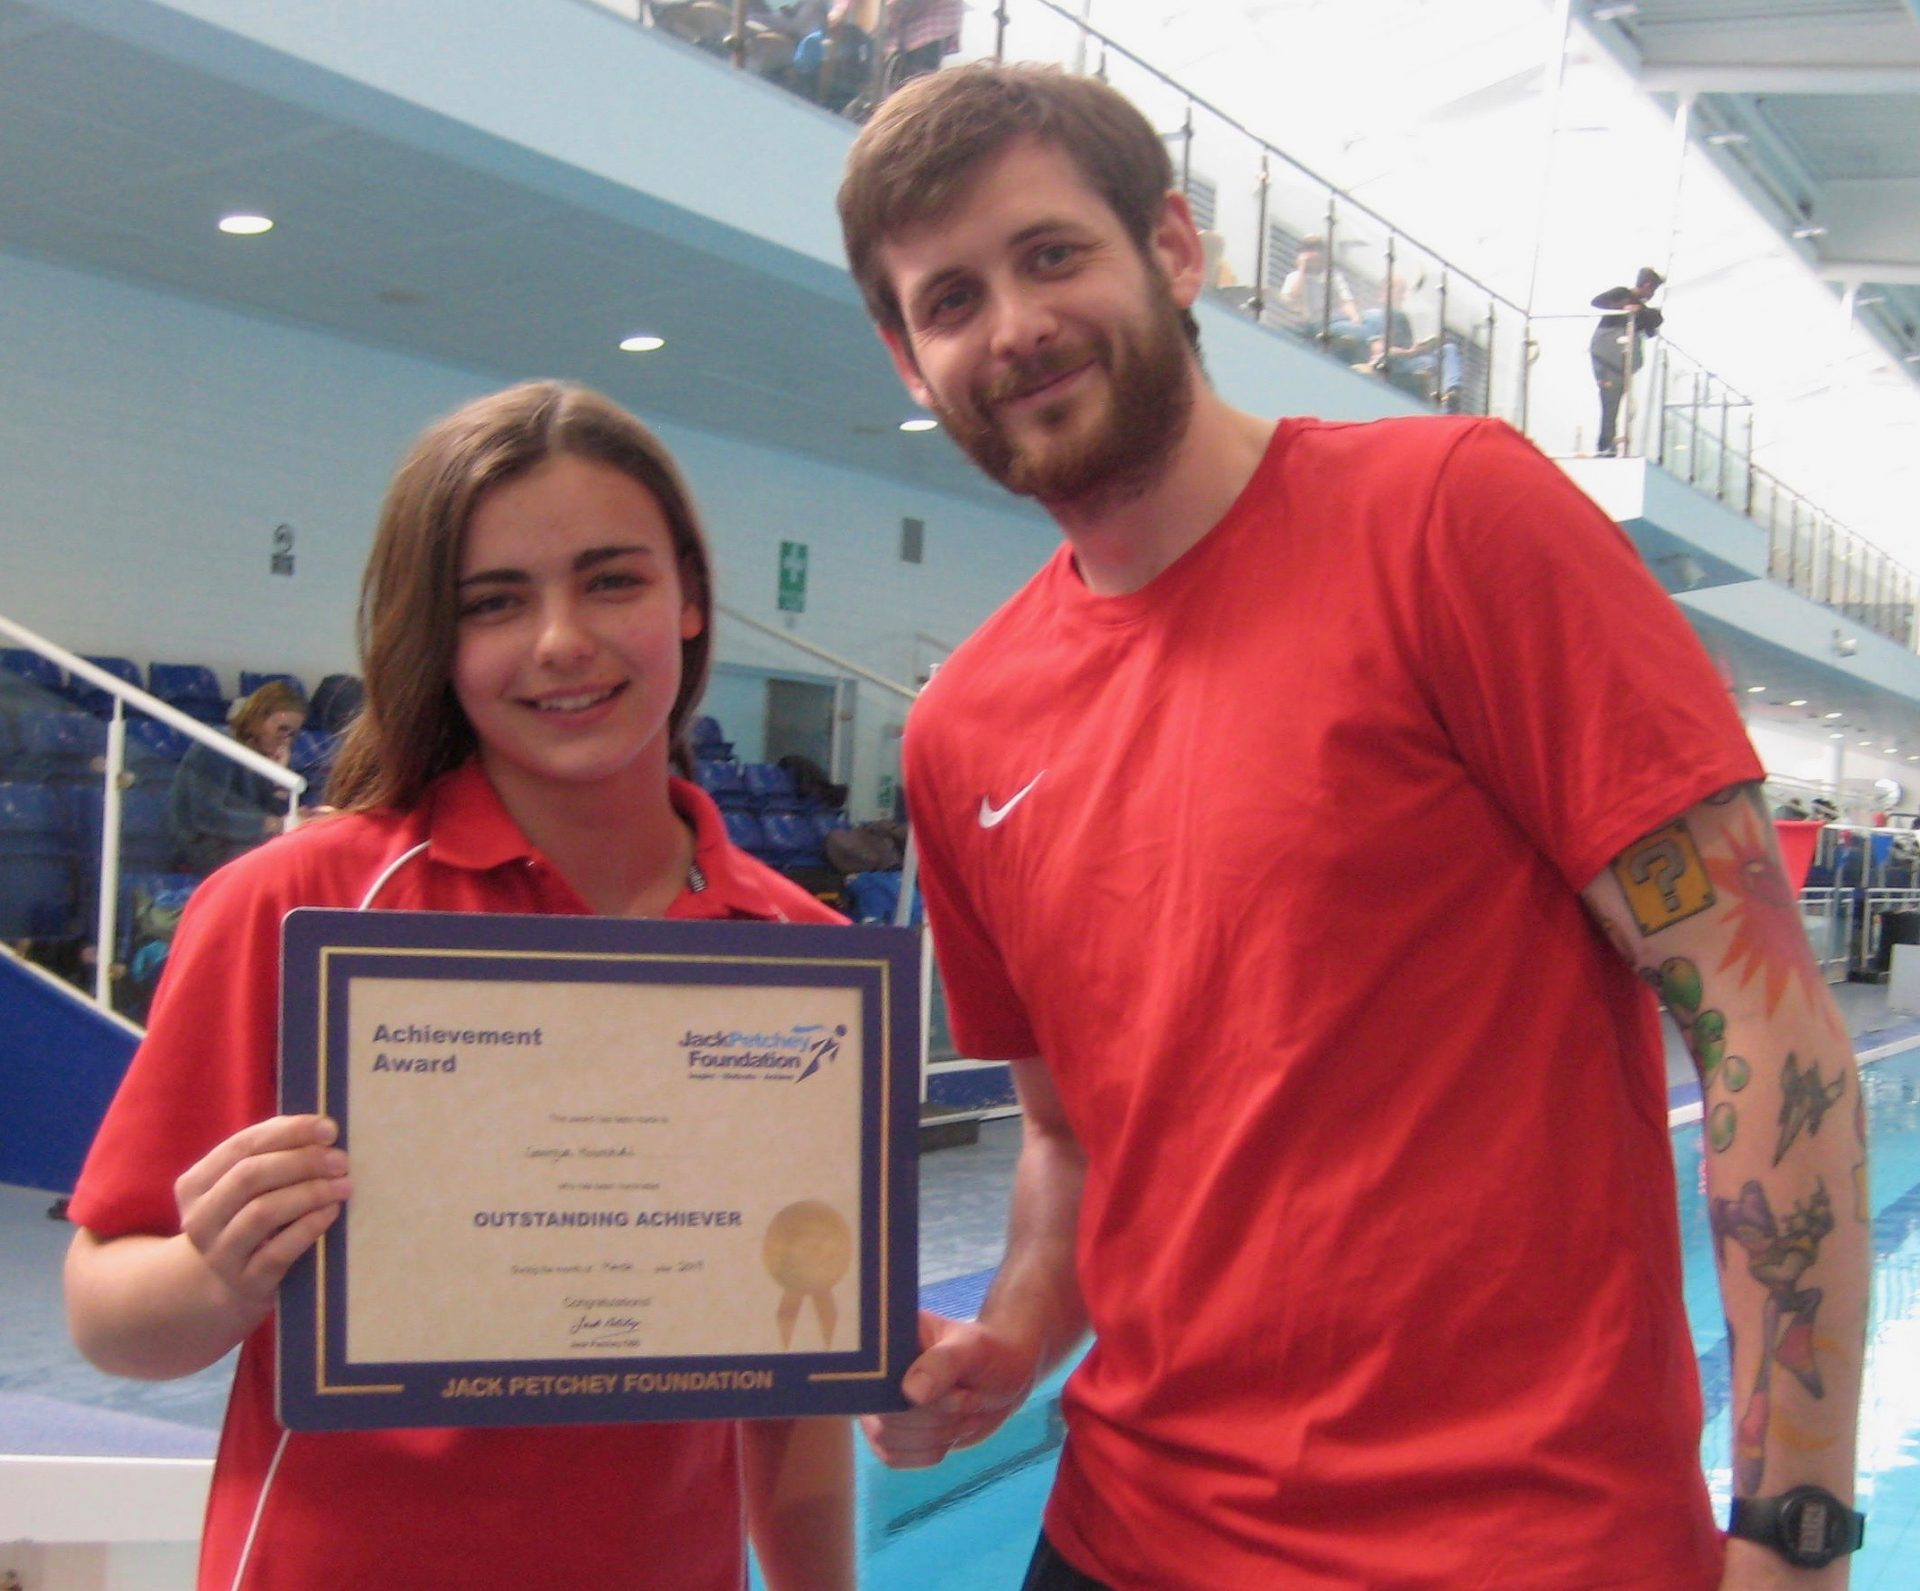 Georgia receiving Award certificate